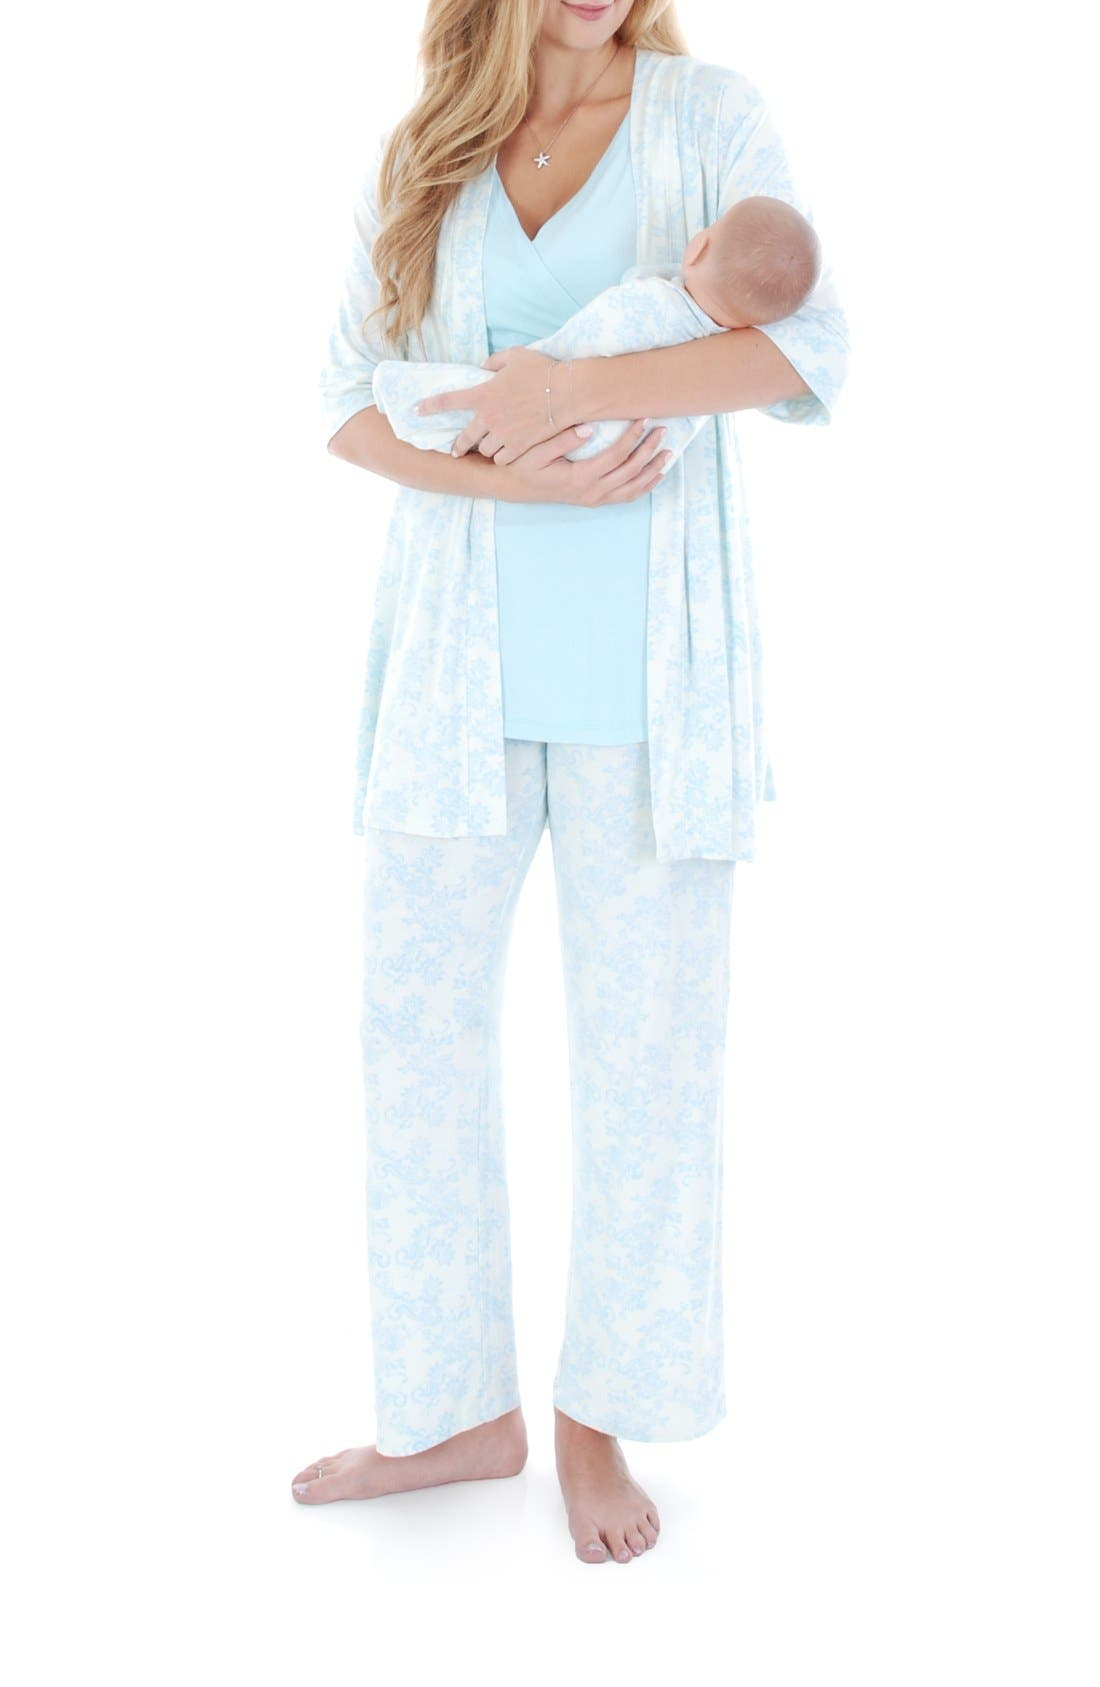 Everly Grey Roxanne - During & After 5-Piece Maternity Sleepwear Set